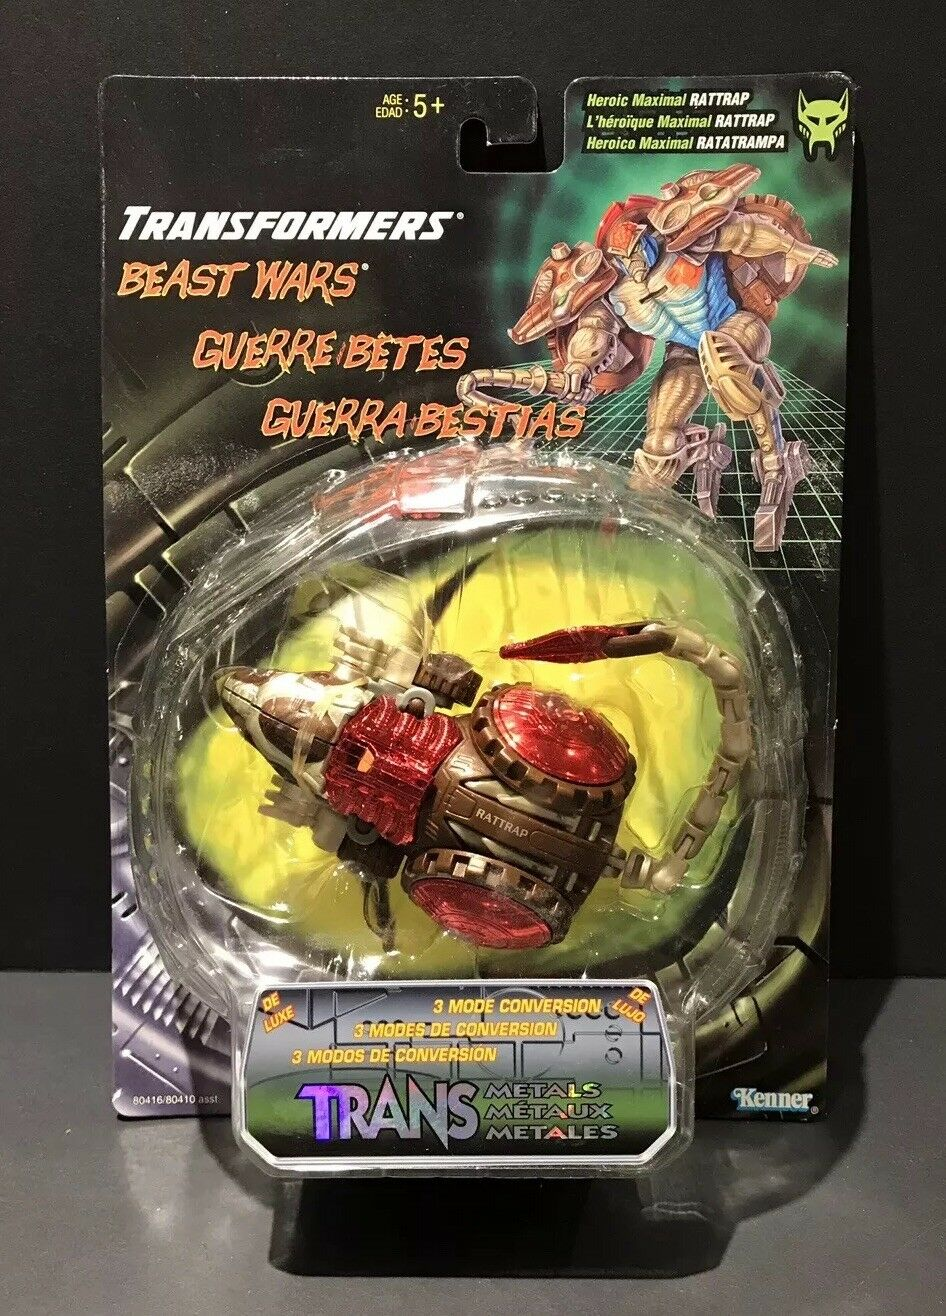 Transformers Kenner Beast Wars transmetals Rattrap maximale Figure Comme neuf on Card